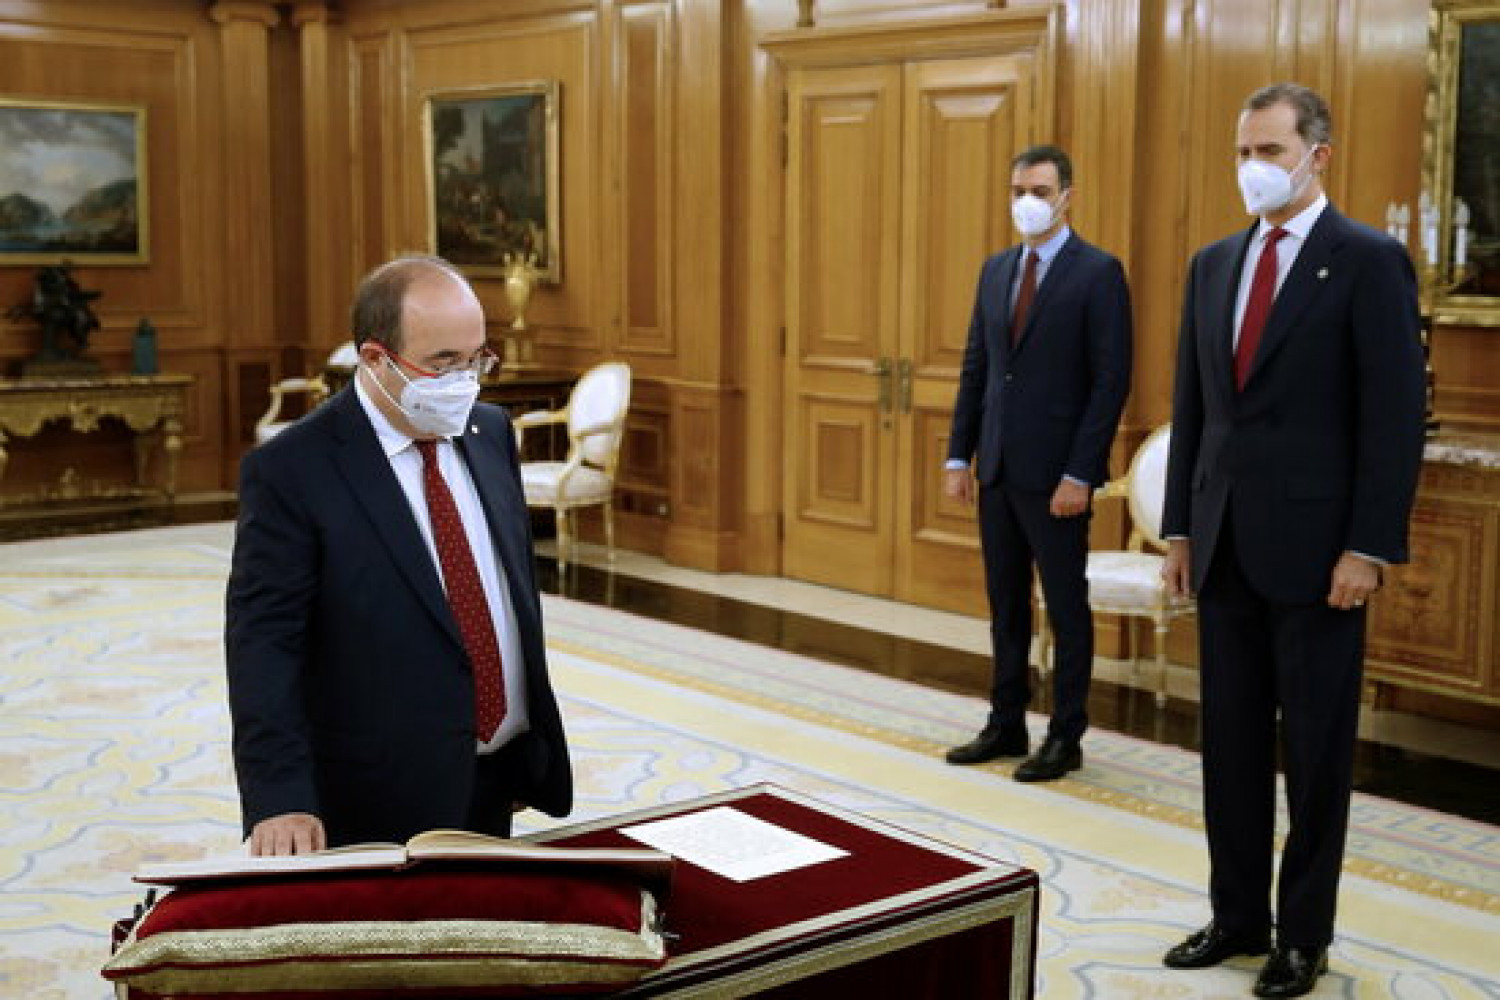 Catalan Socialist leader Miquel Iceta takes the oath as Spanish minister before king Felipe VI and president Pedro Sánchez (by Moncloa)